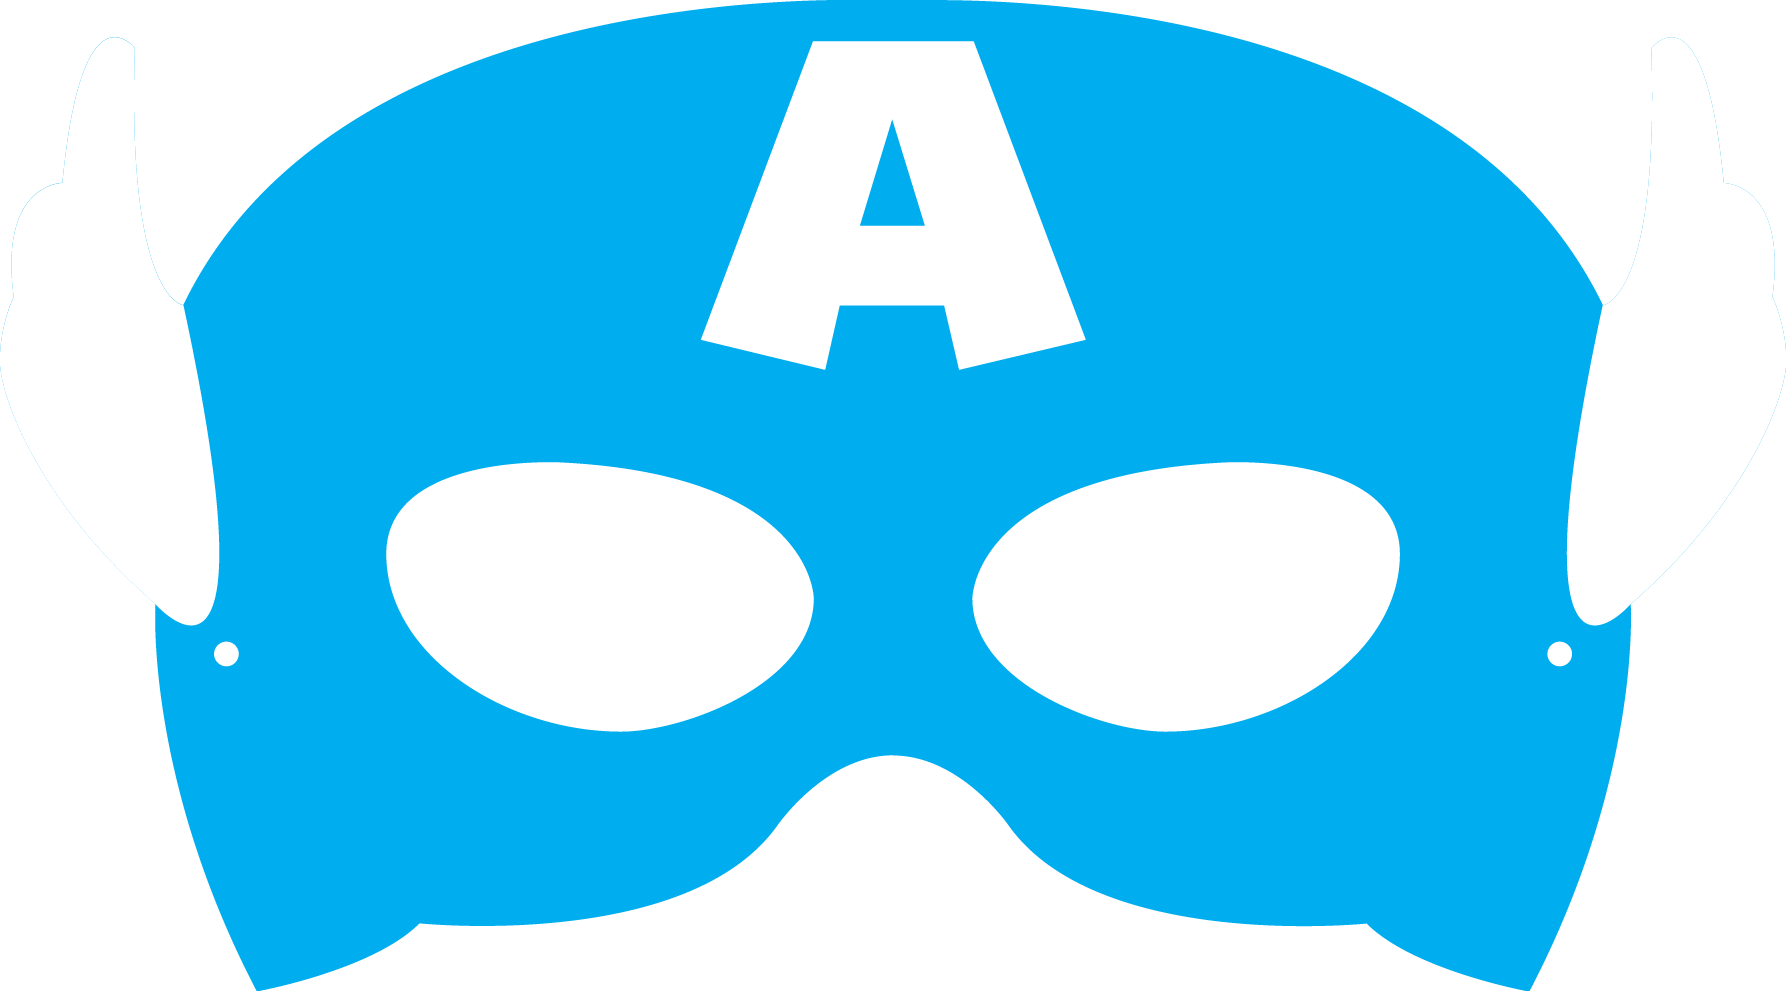 avengers mask template - superhero mask template free download best superhero